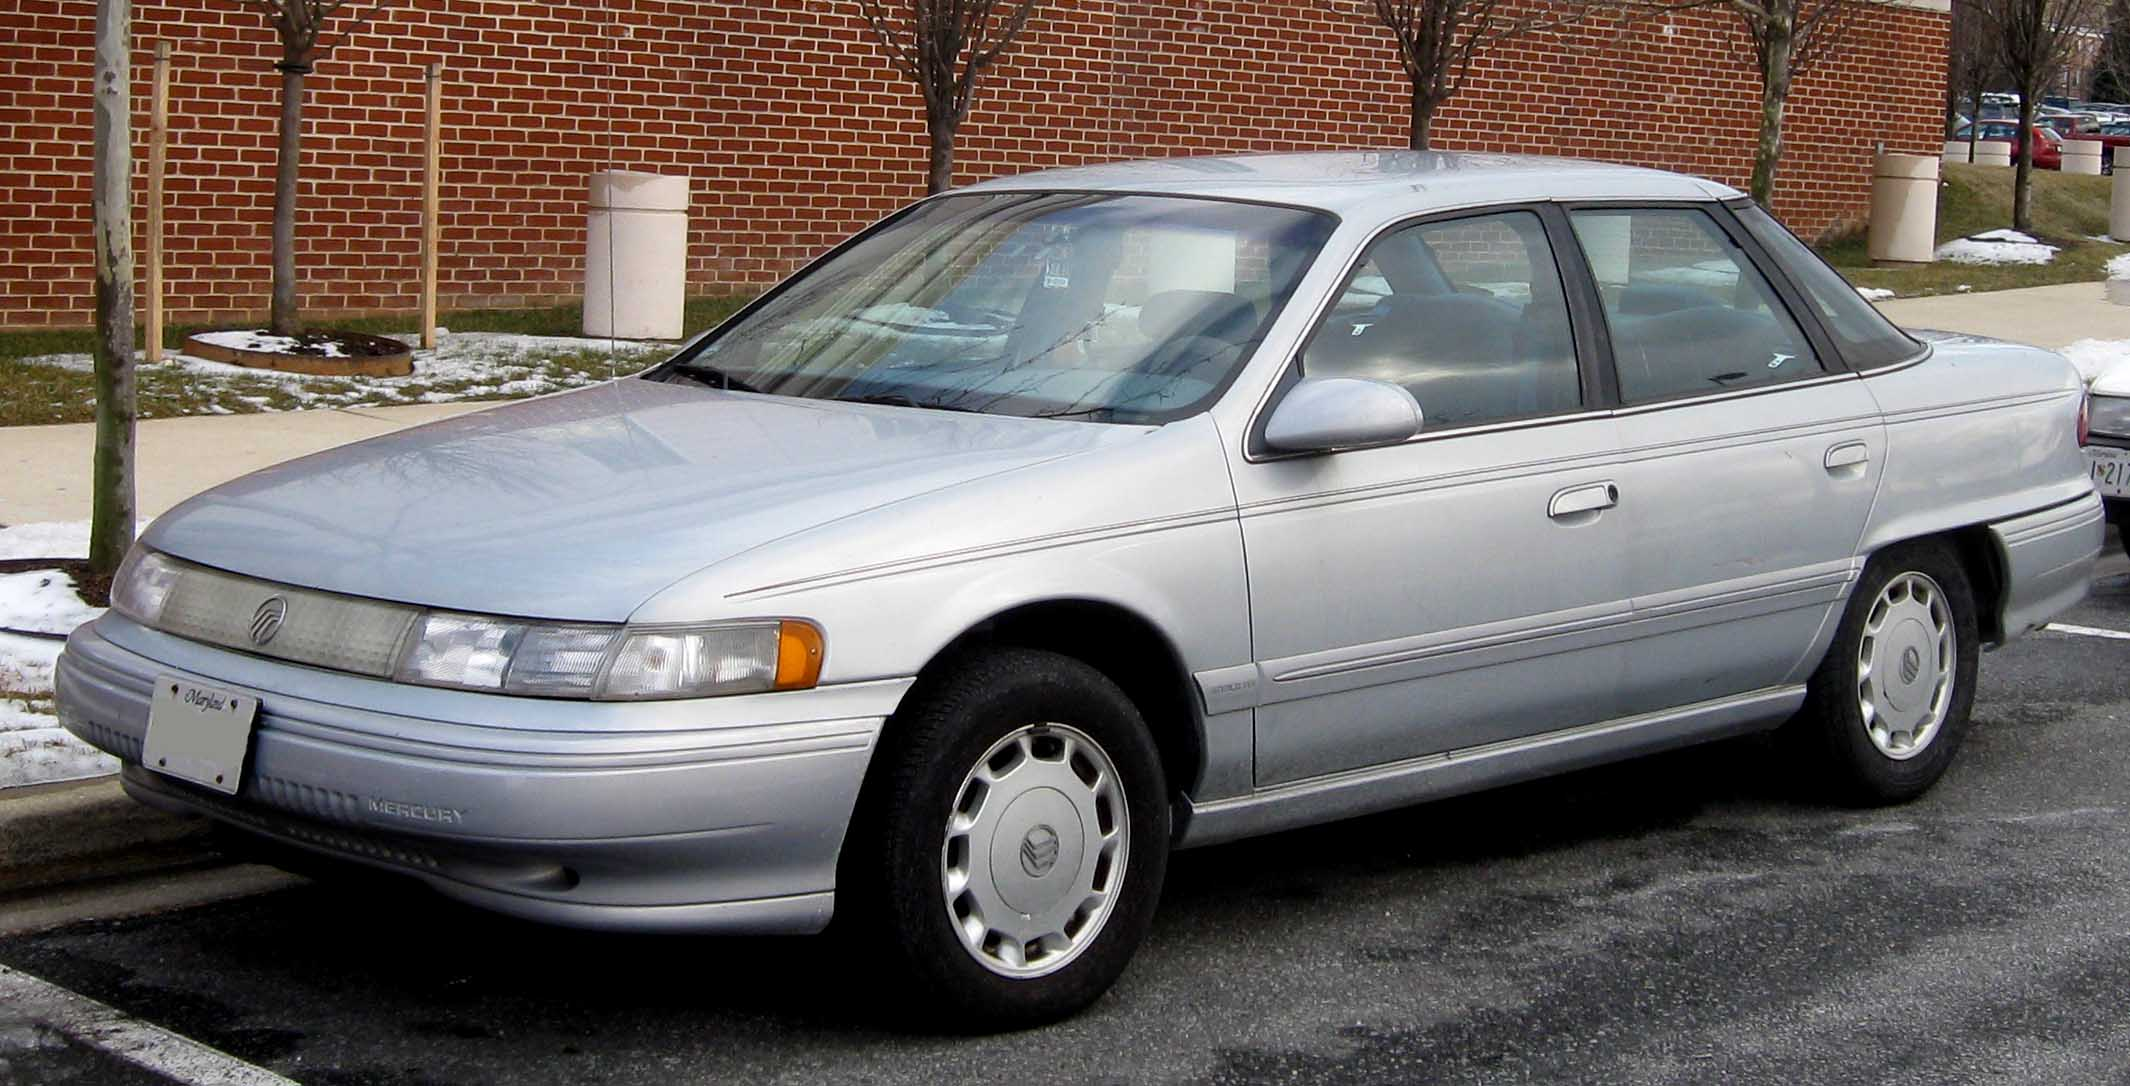 1995 Mercury Sable Information And Photos Zombiedrive